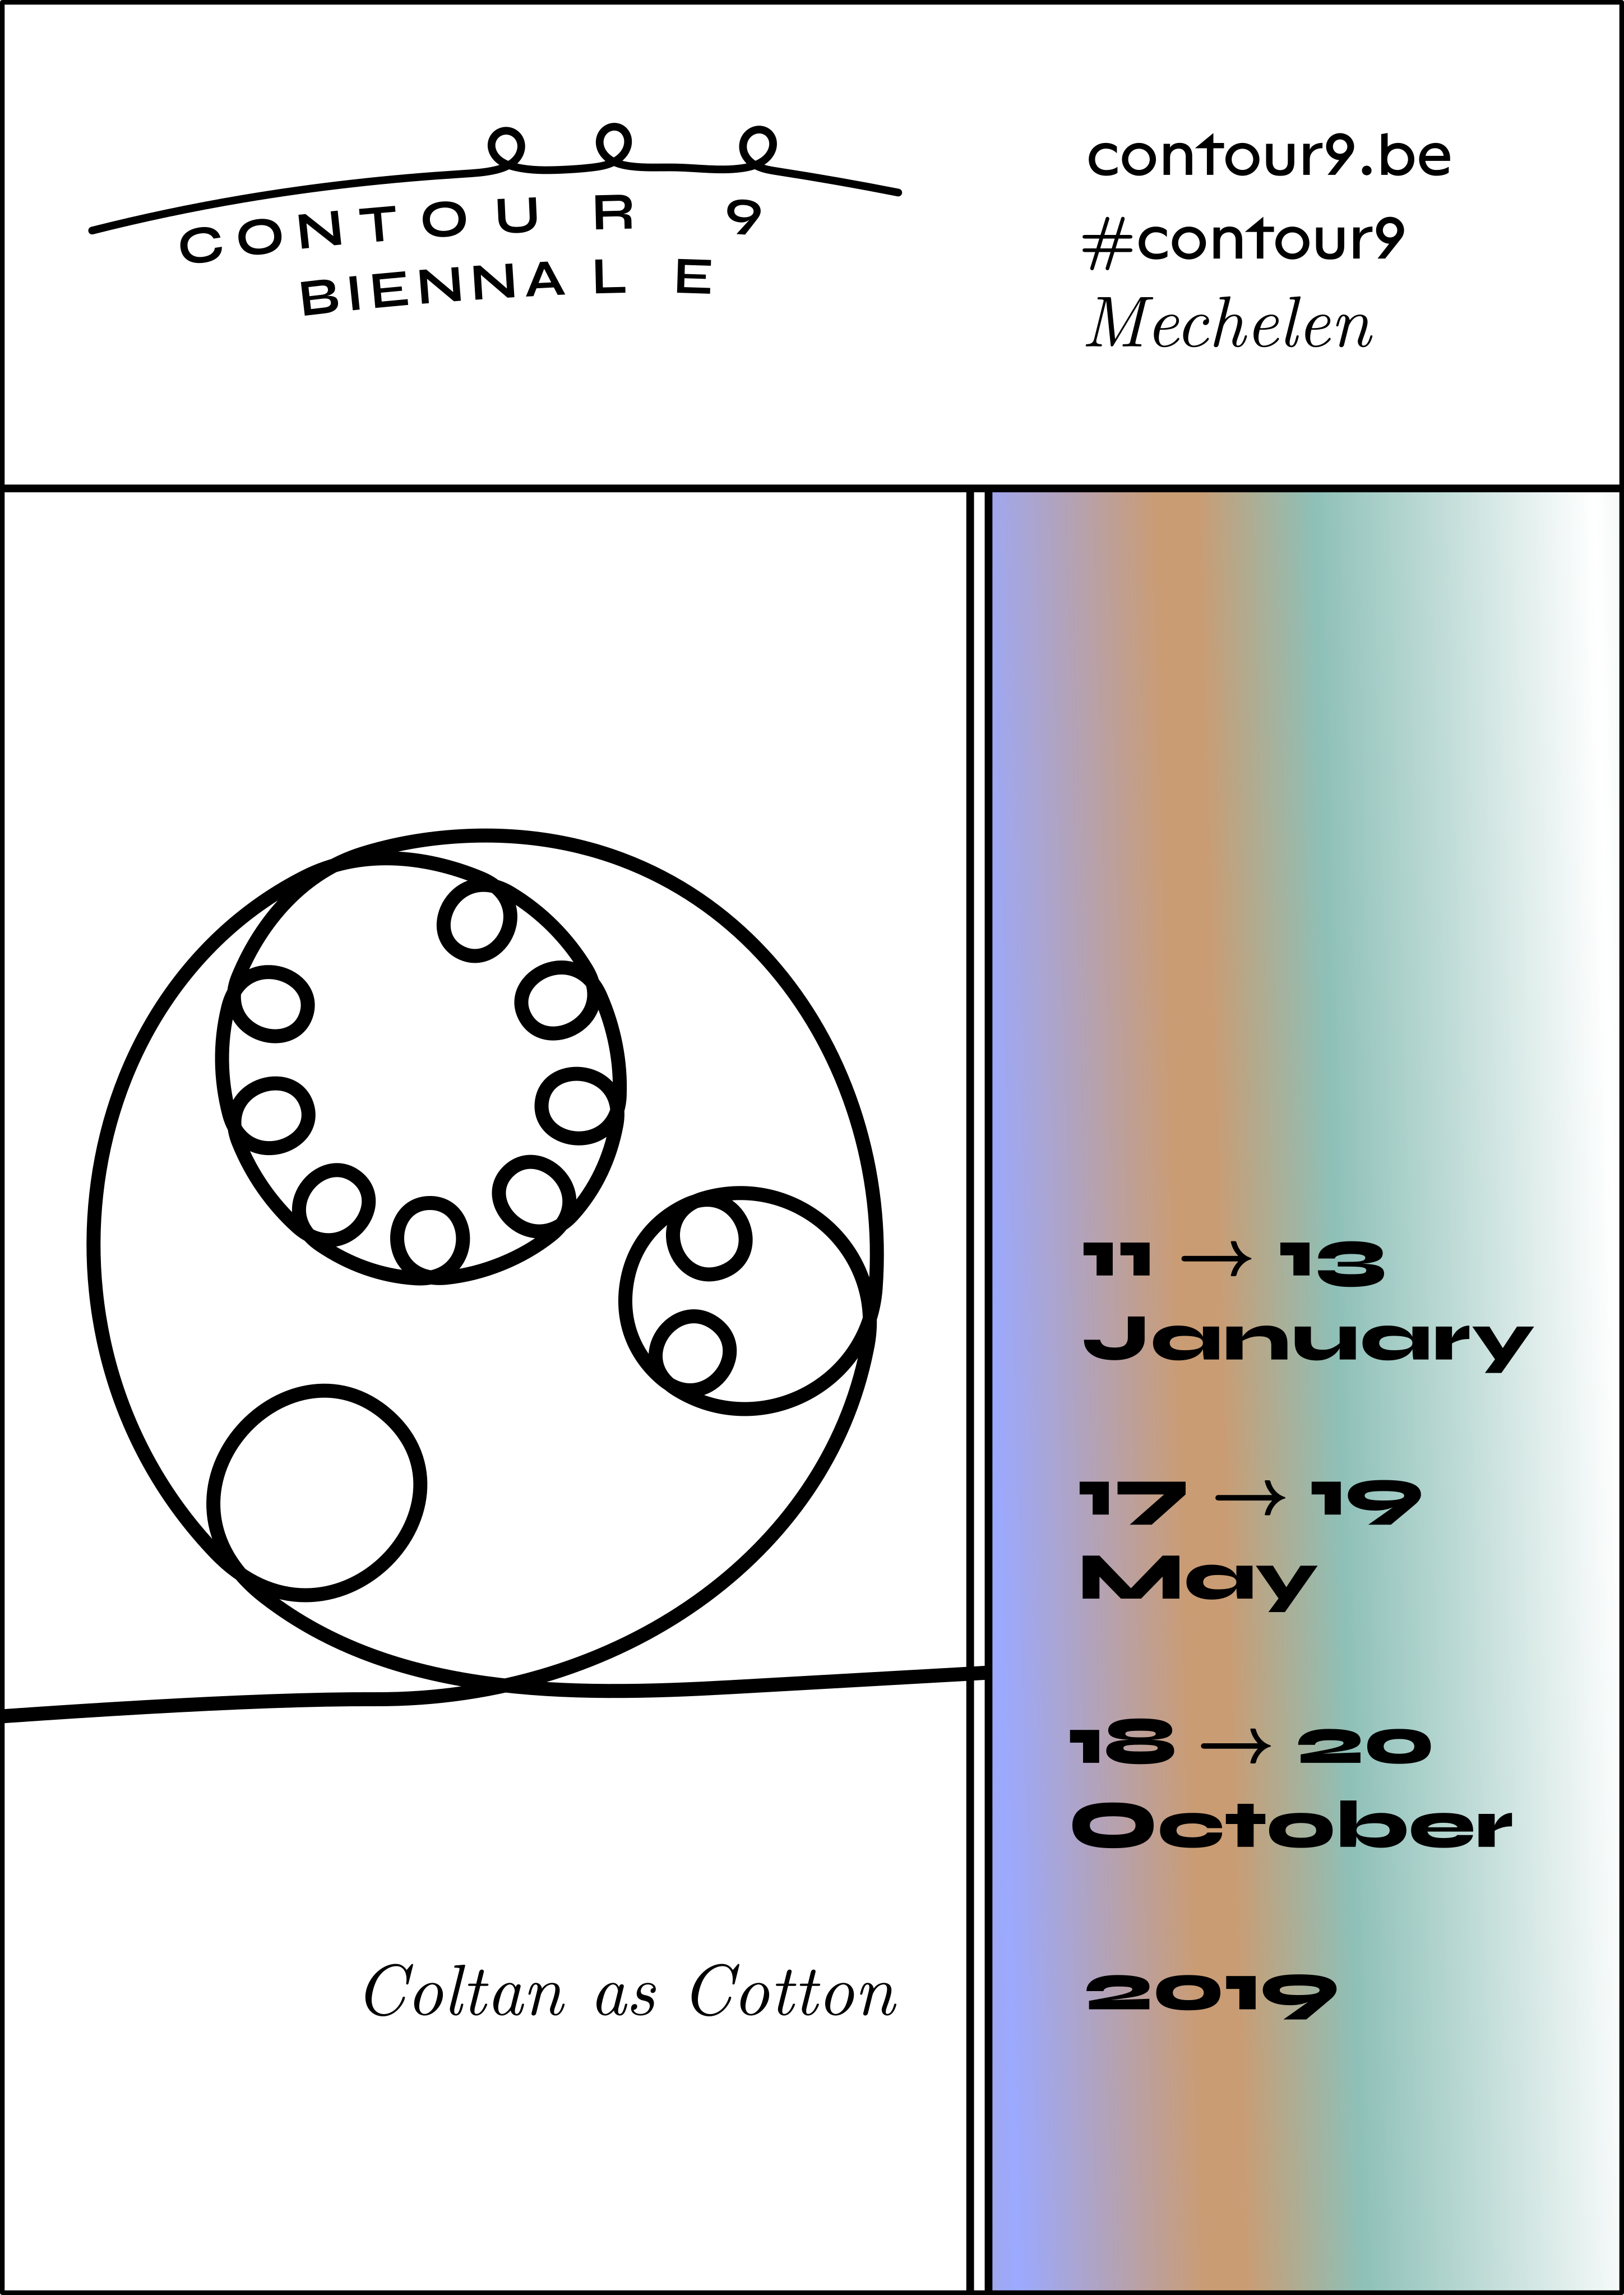 communication/posters/a2-general5.png